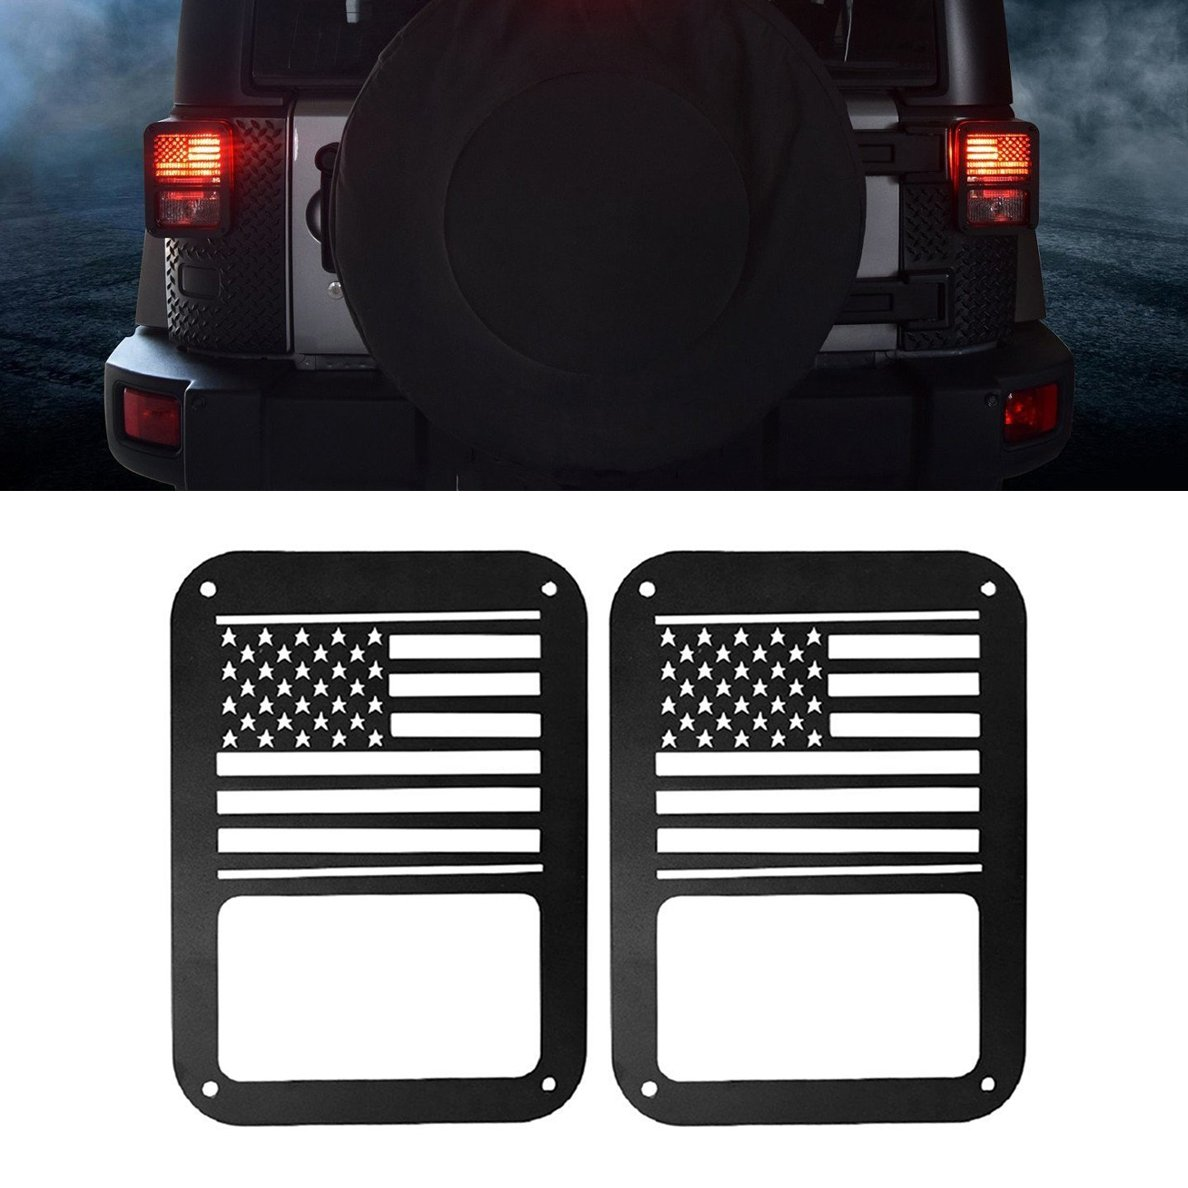 IBACP Tail Light Cover Guard USA Flag Style taillight Guards Protectors Covers for 2007-2017 Jeep Wrangler JK Pair